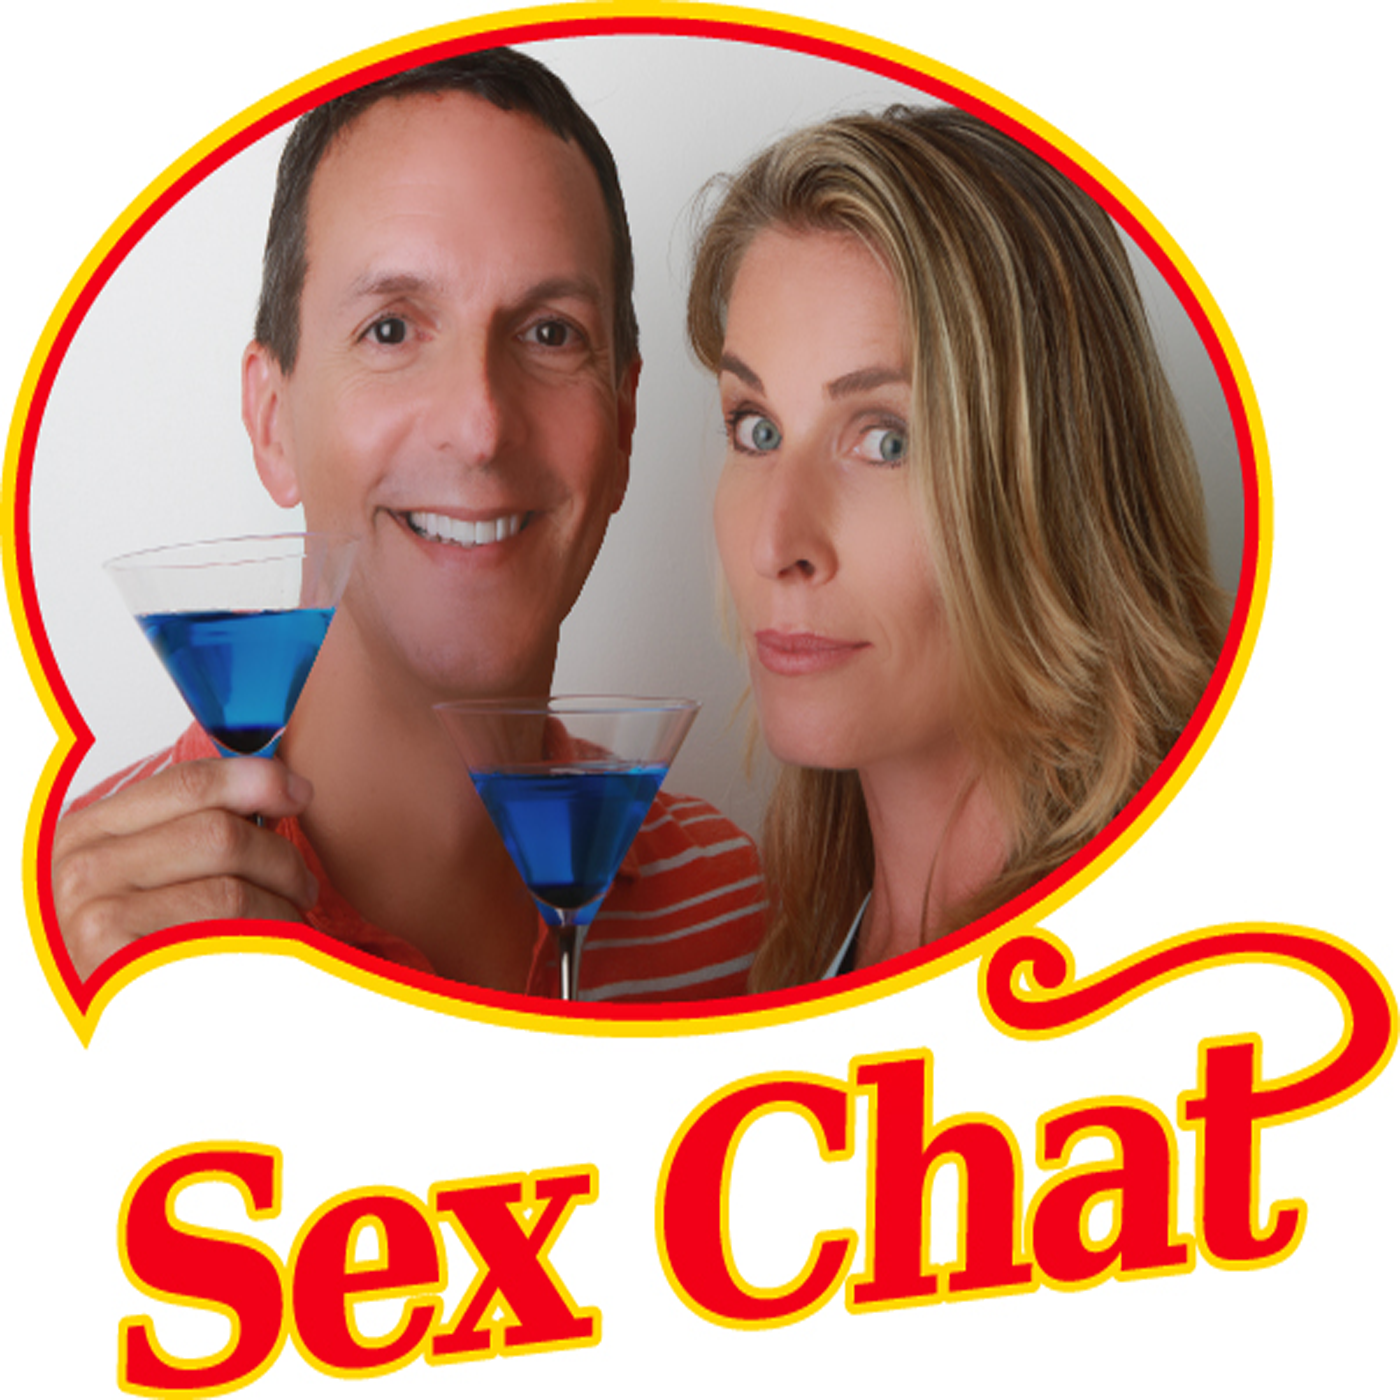 Do you have any about dating French women?